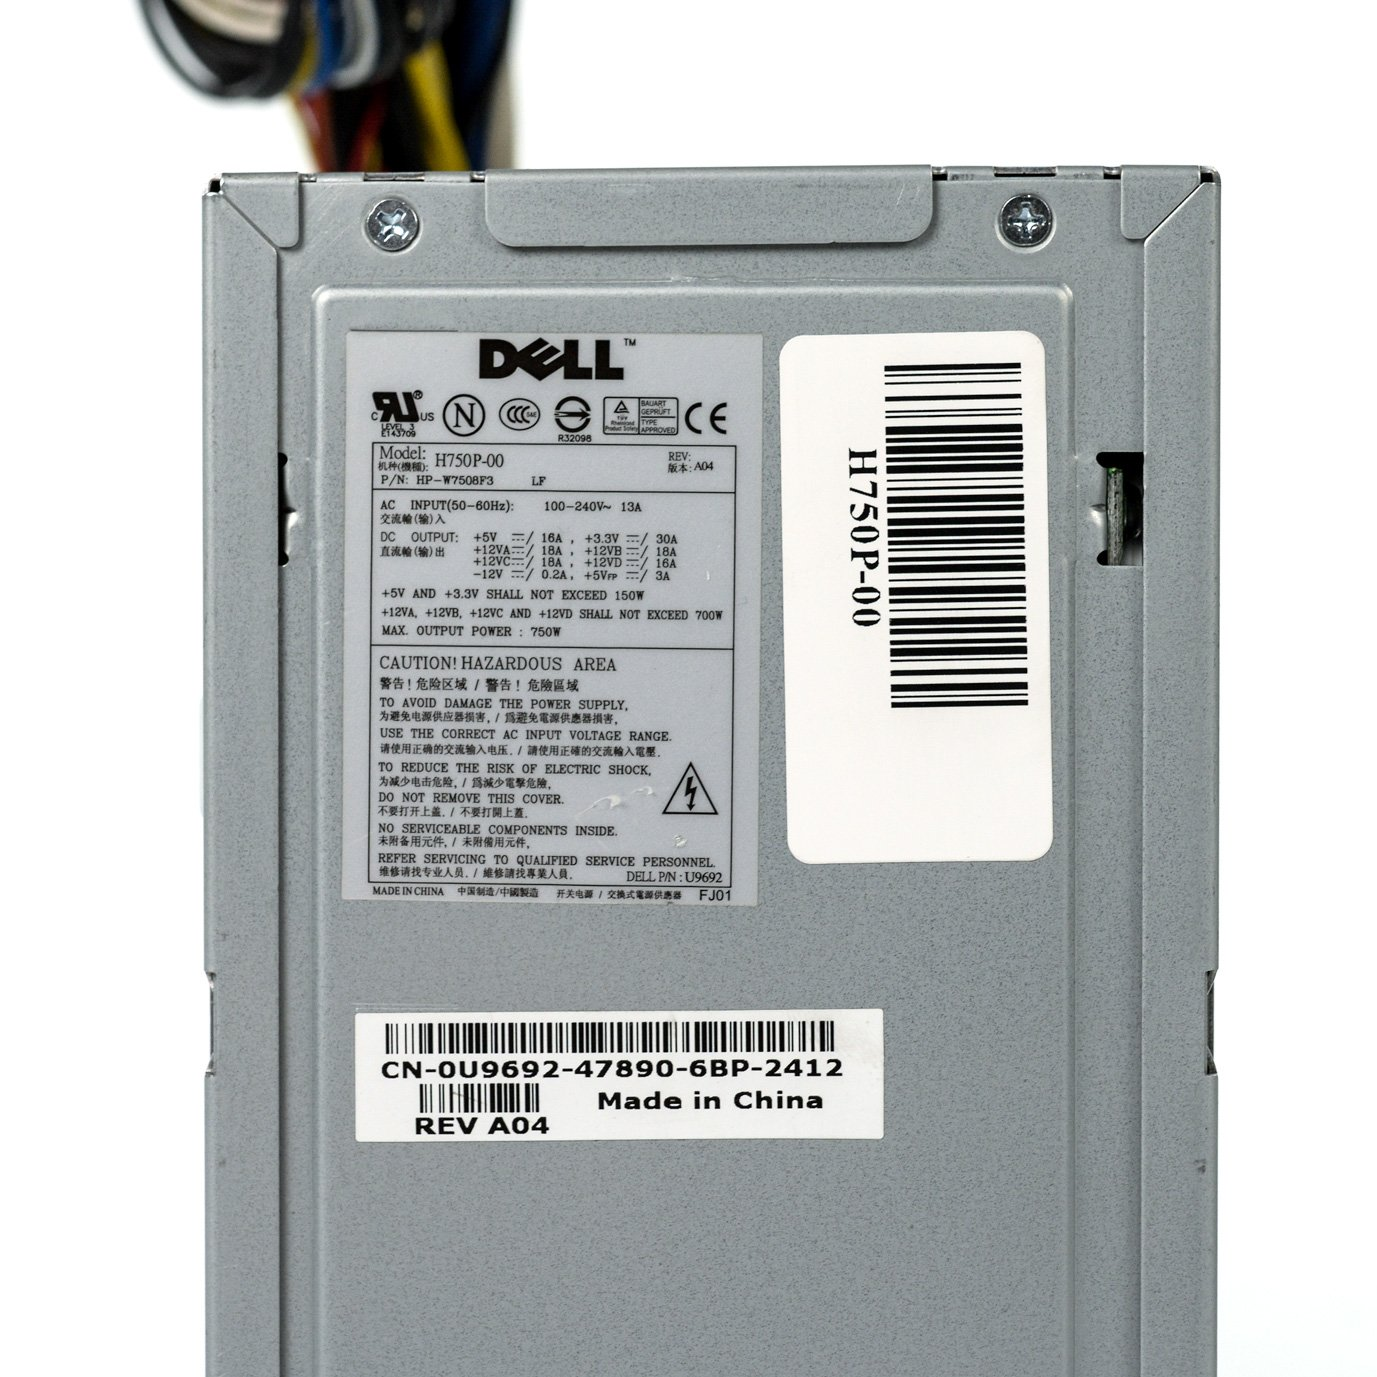 Wiring Diagram For Dell 690 Power Supply Beautiful Computer Specifications Gift